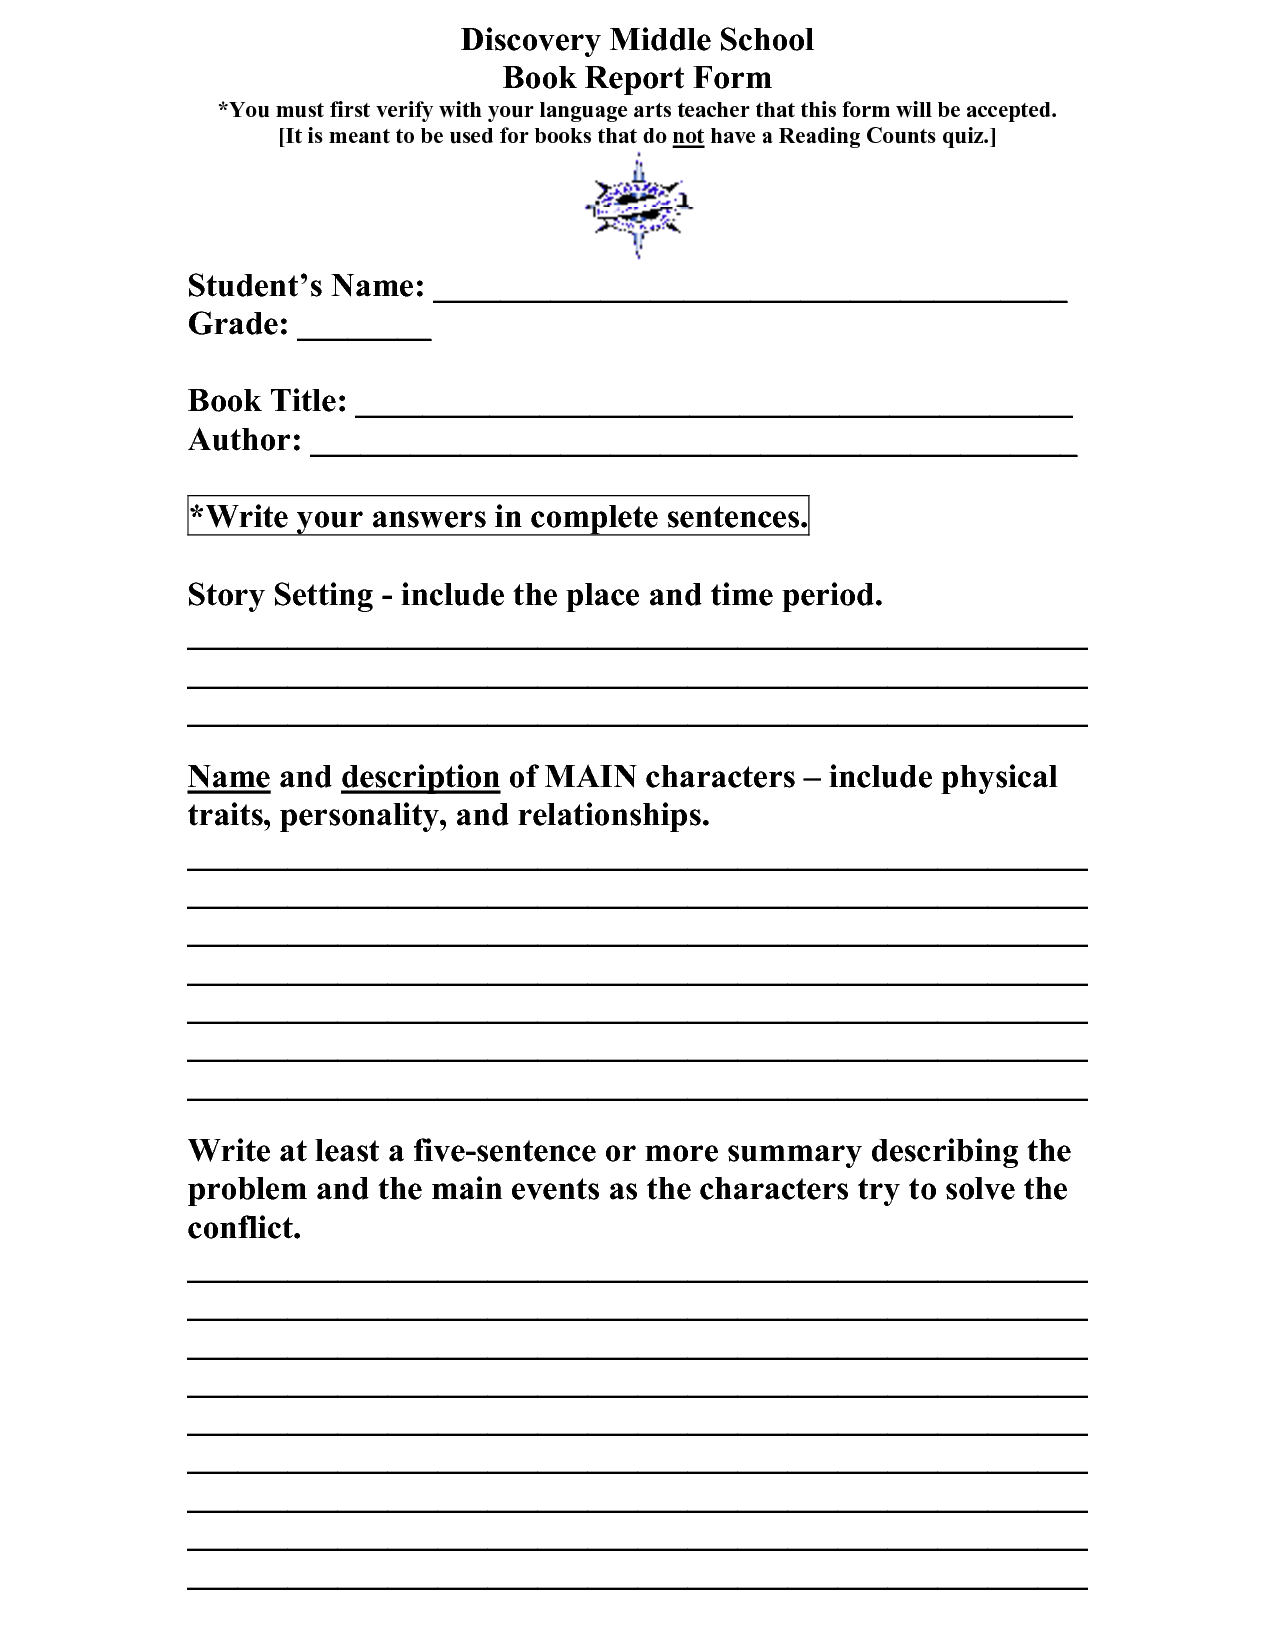 Book Report Template Elementary School Scope Of Work